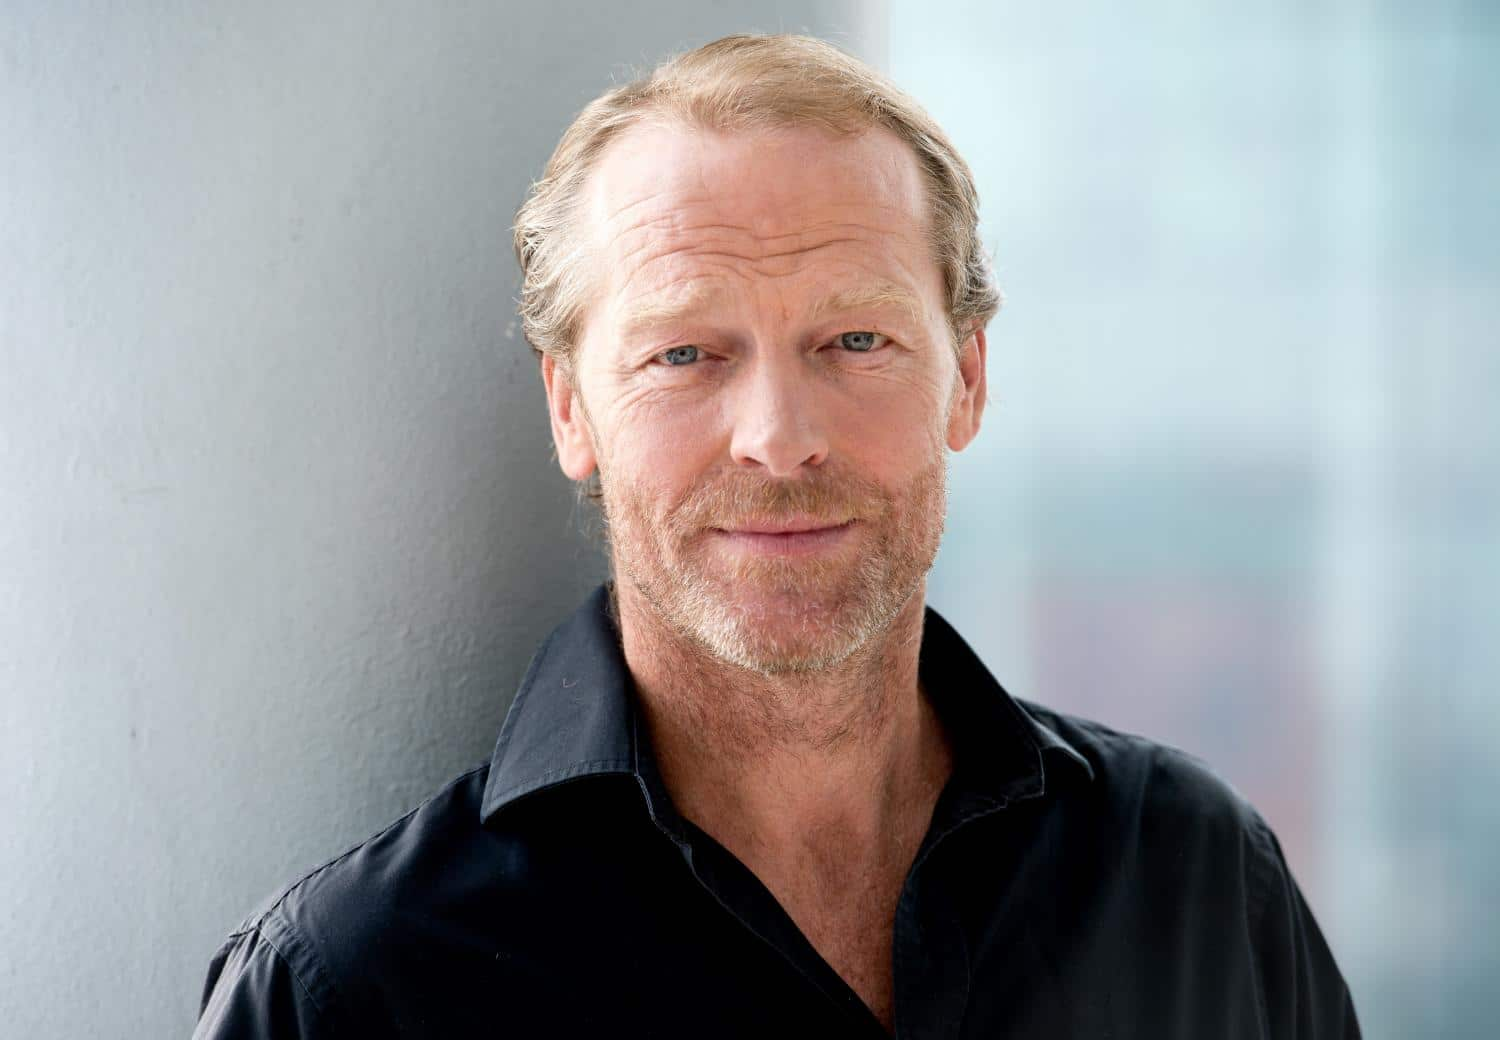 Iain Glen Scottish, British Actor